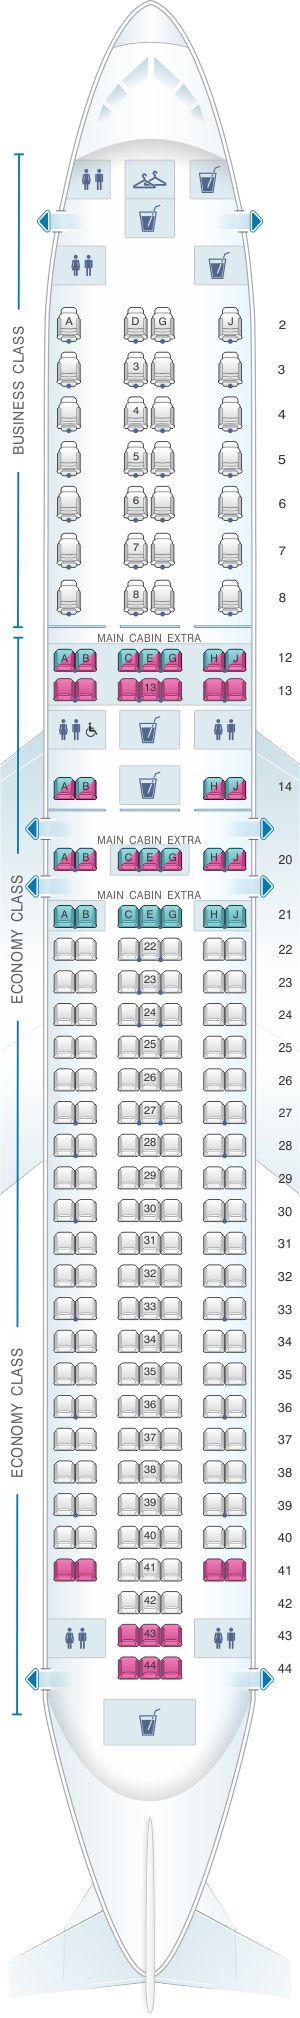 Seat Map American Airlines Boeing B767 300